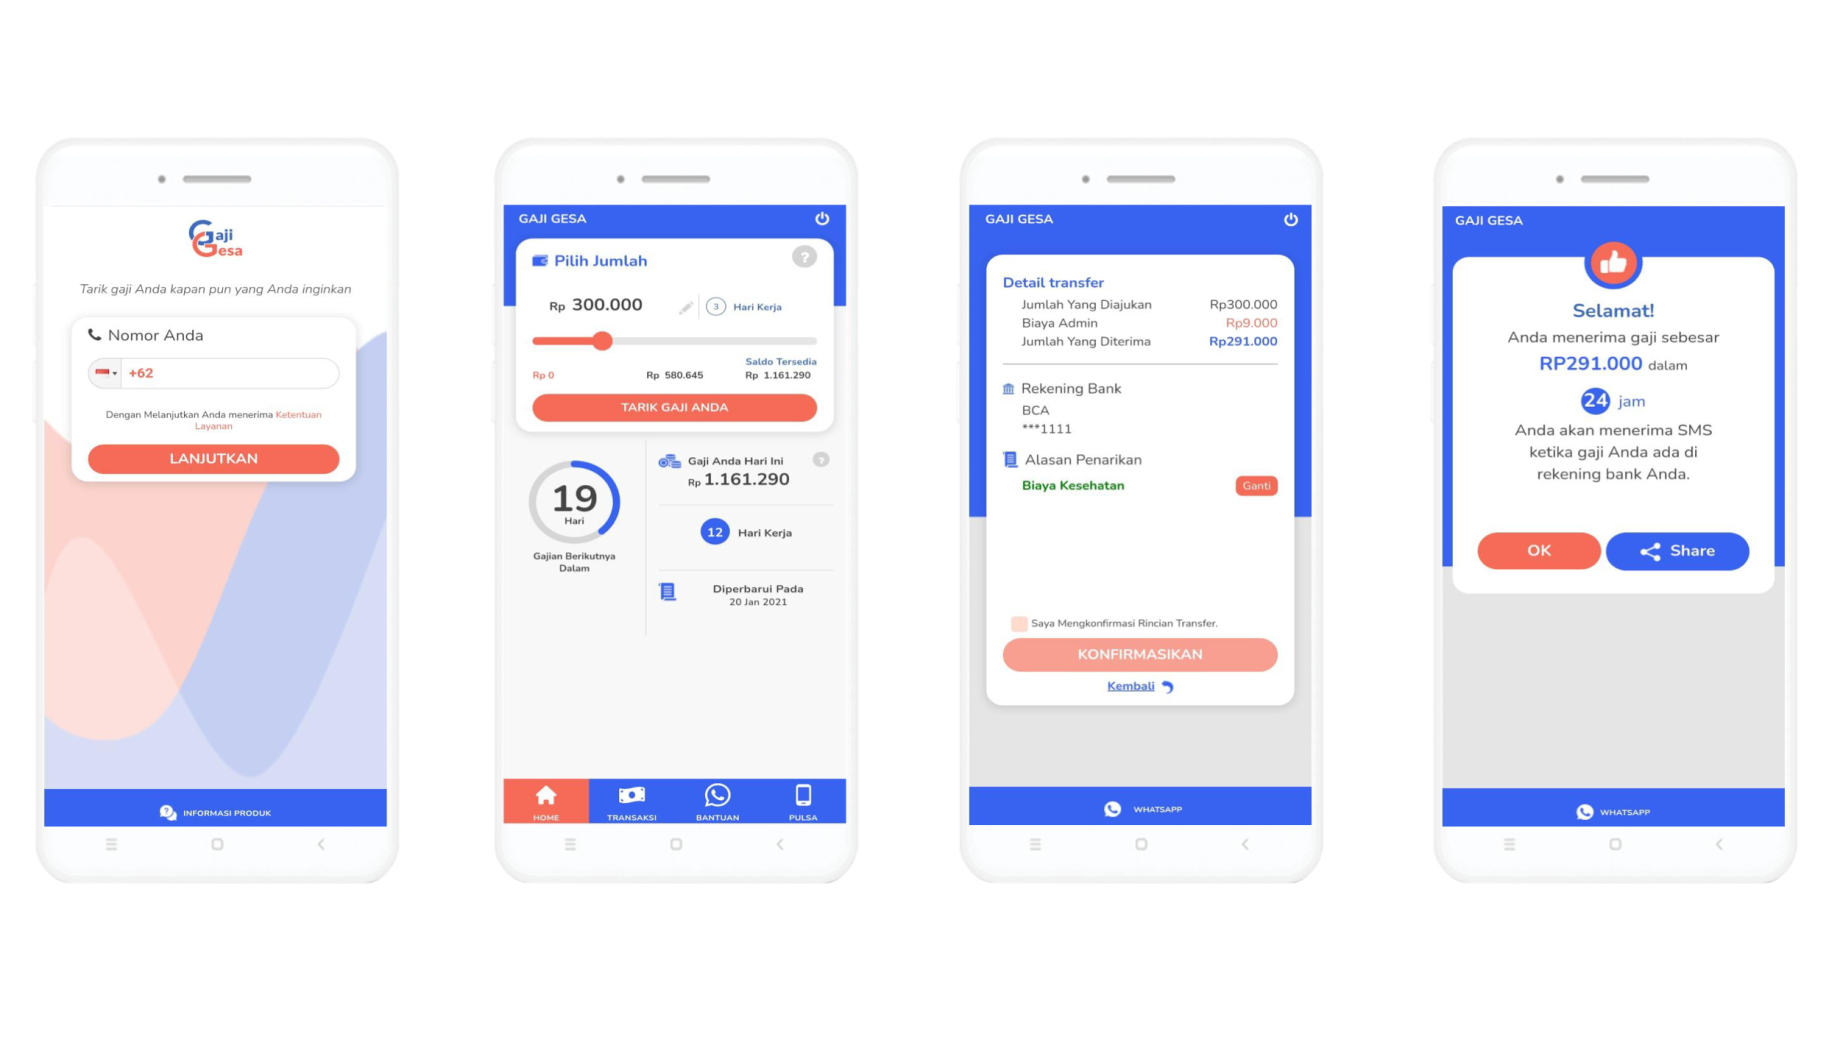 Screenshots showing how GajiGesa's app works. GajiGesa is a startup that offers earned wage access and other services to Indonesian workers.